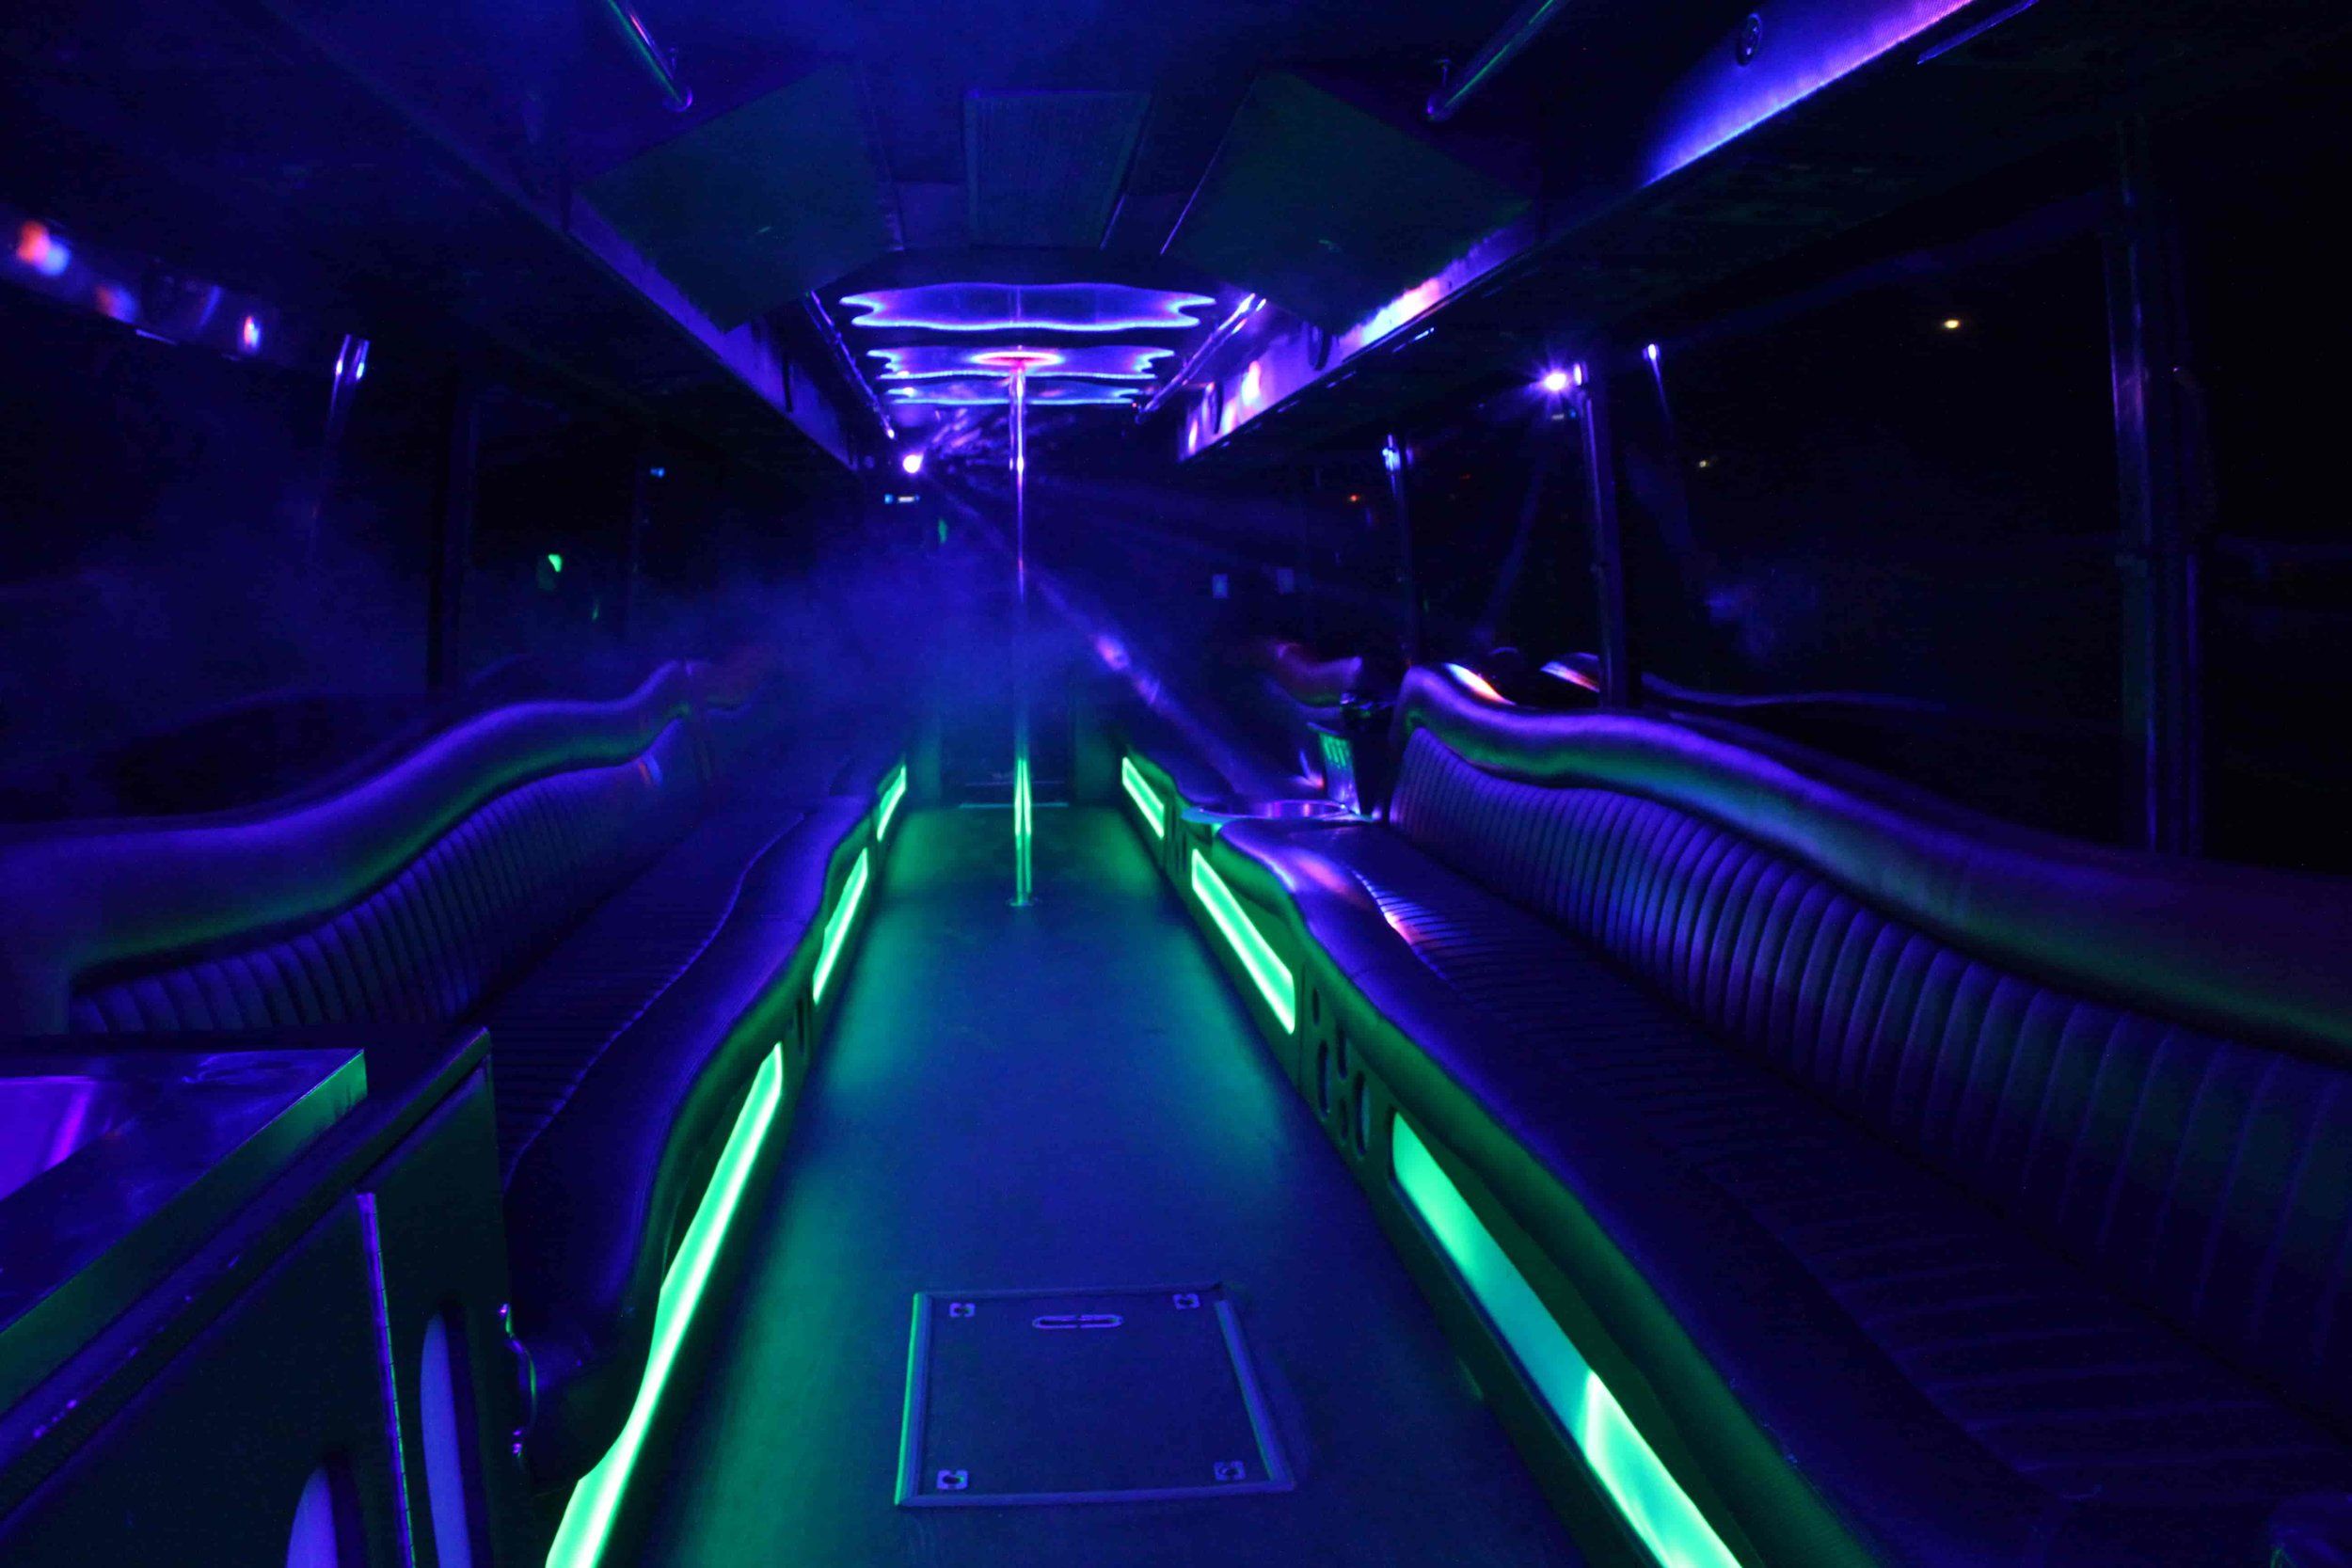 47 Passenger Patriot Limo Bus with a under lit diffusion from fog machine